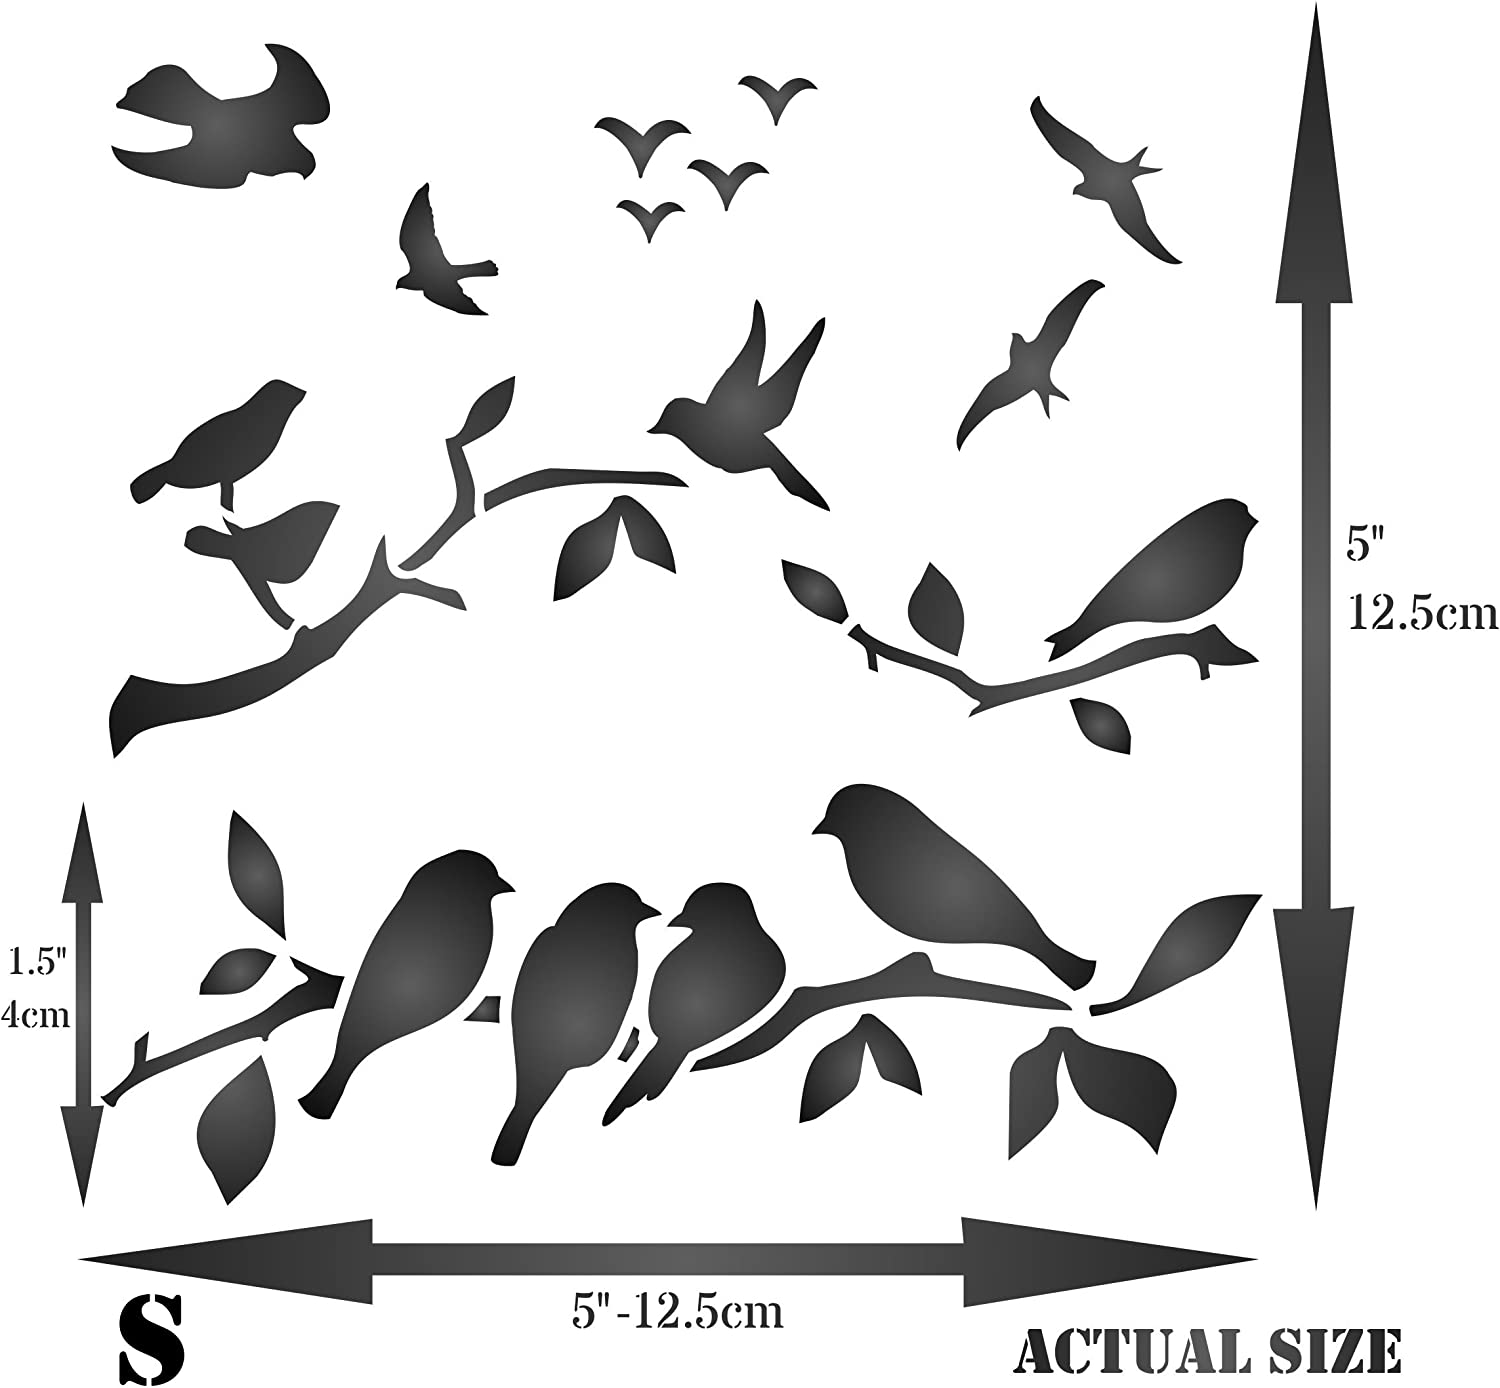 Birds On Branches Stencil 12.5 x 12.5cm Use on Paper Projects Scrapbook Journal Walls Floors Fabric Furniture Glass Wood etc. - Reusable Bird Branch Silhouette Wall Stencil Template S